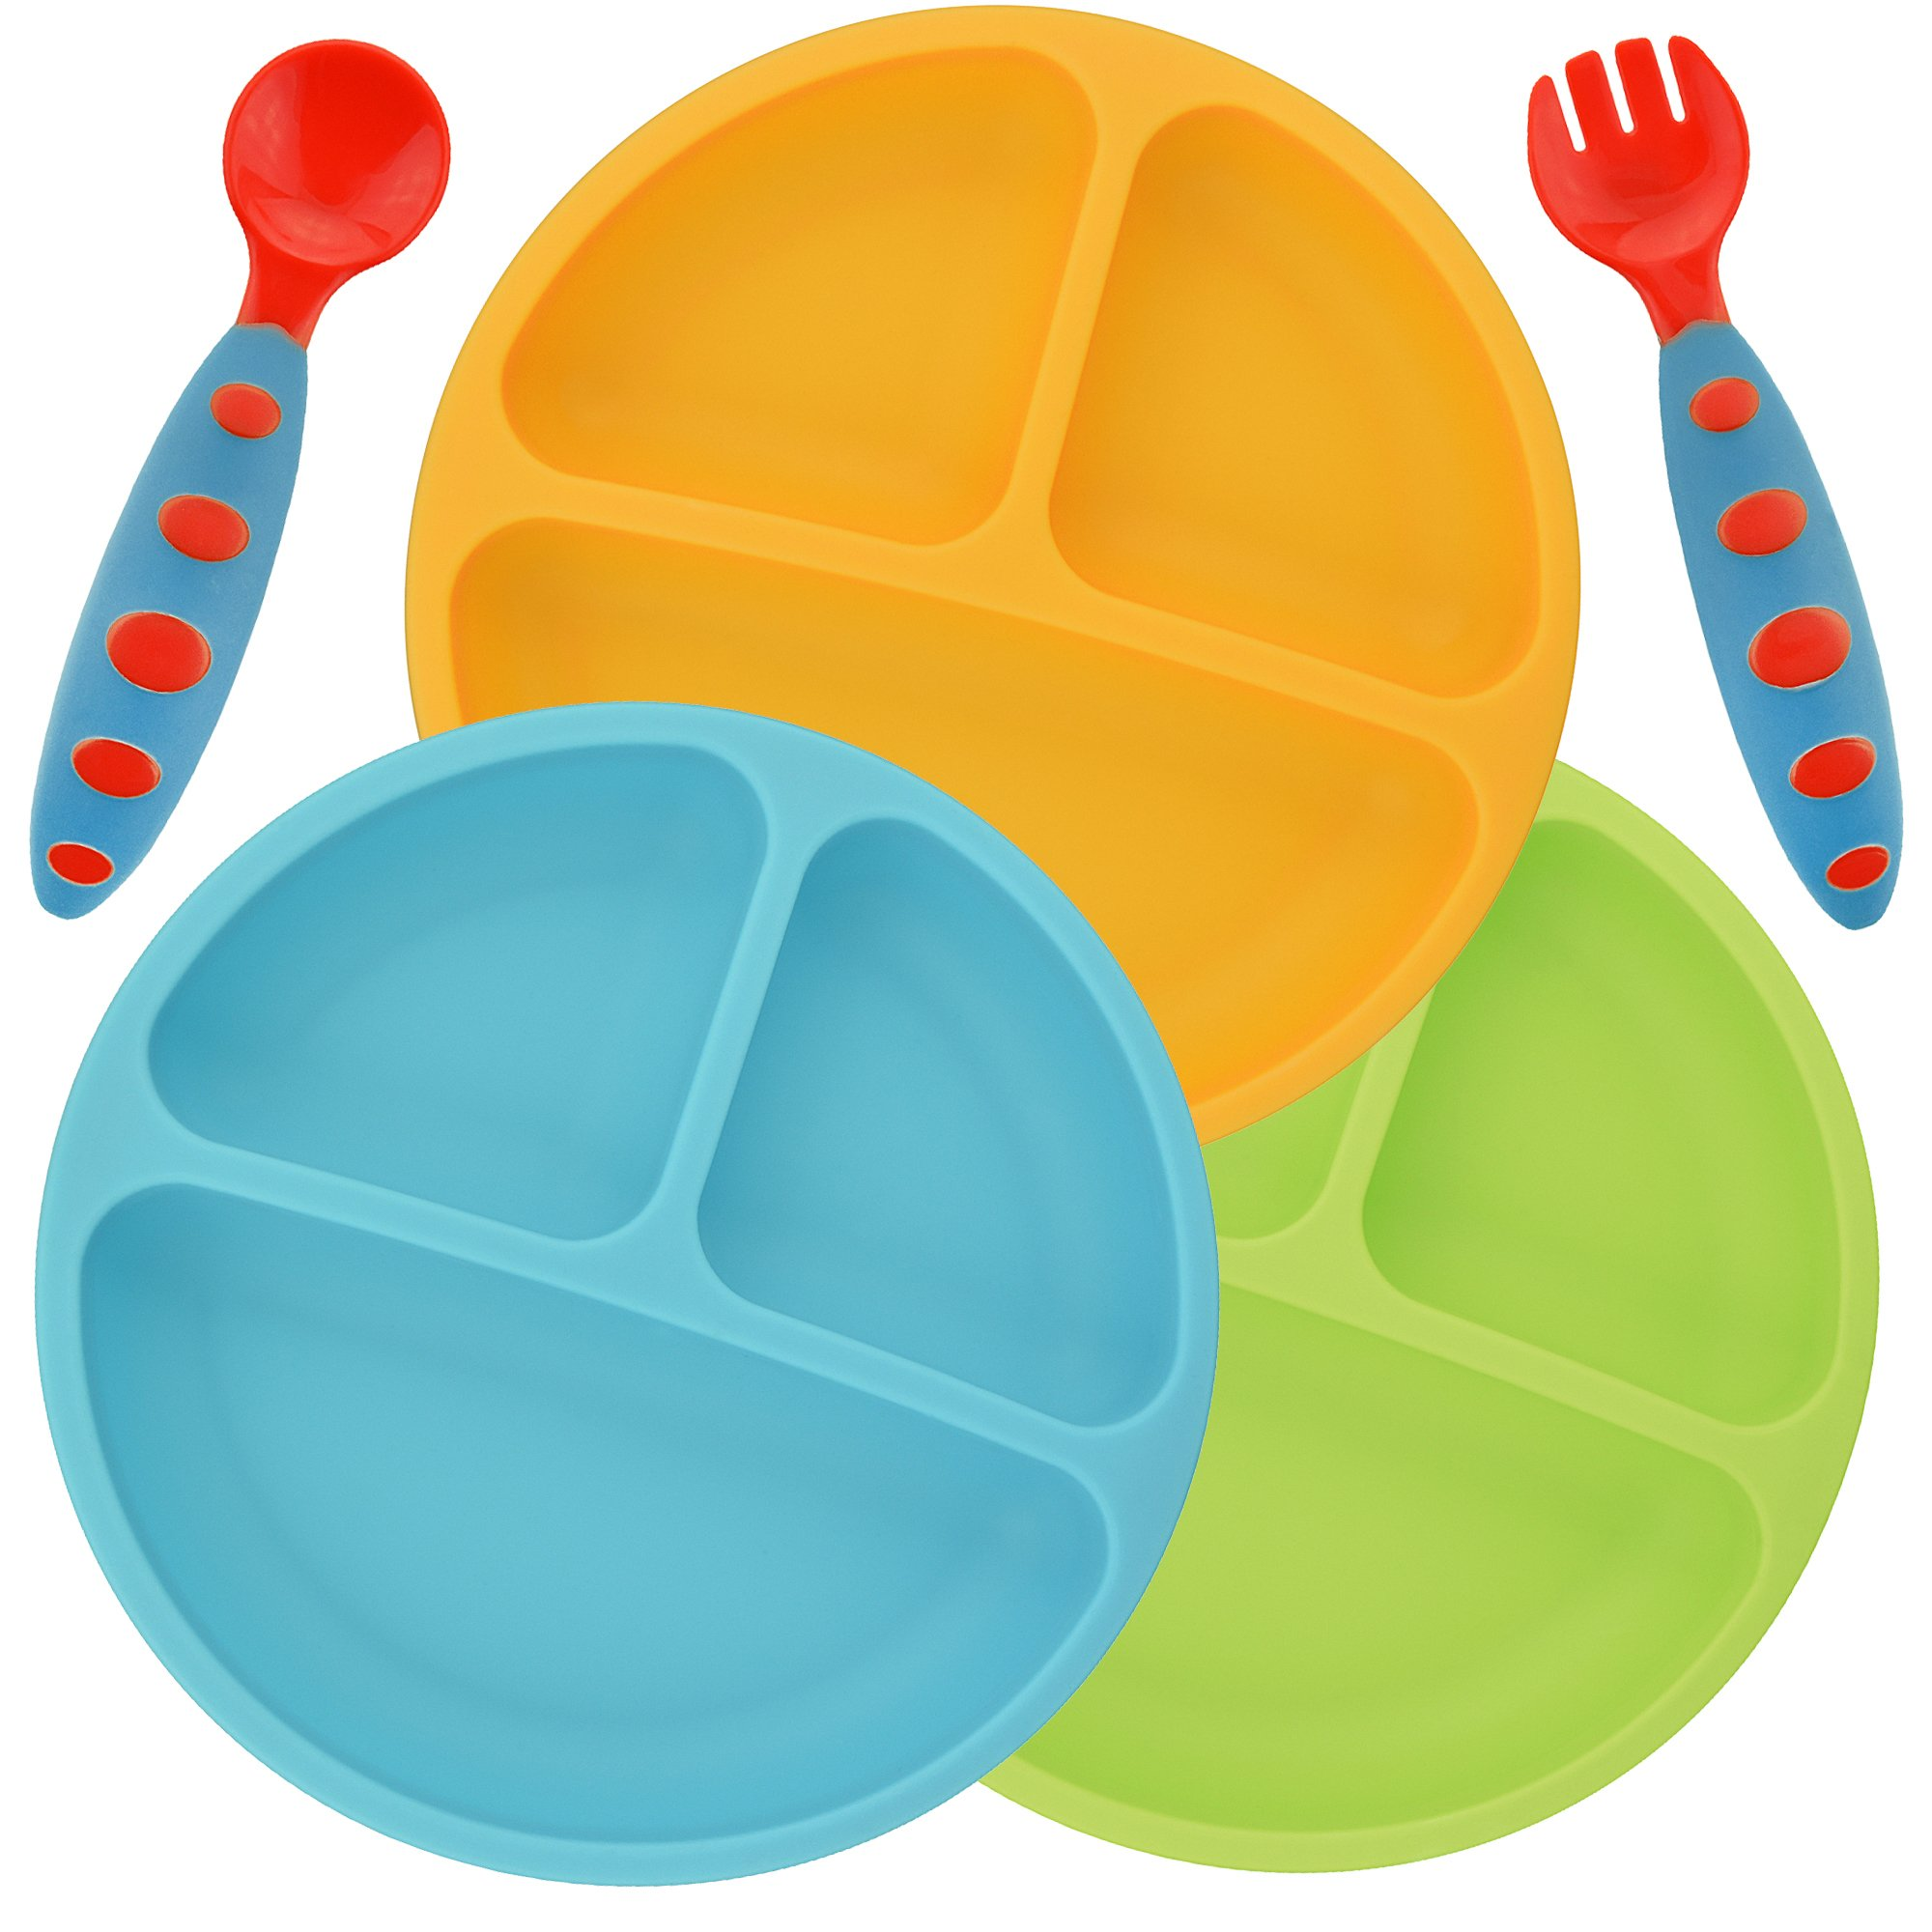 PandaEar Divided Unbreakable Silicone Baby and Toddler Plates - 3 Pack - Non-Slip - Dishwasher and Microwave Safe - FDA/LFGB Certified Silicone Blue Green Yellow by PandaEar